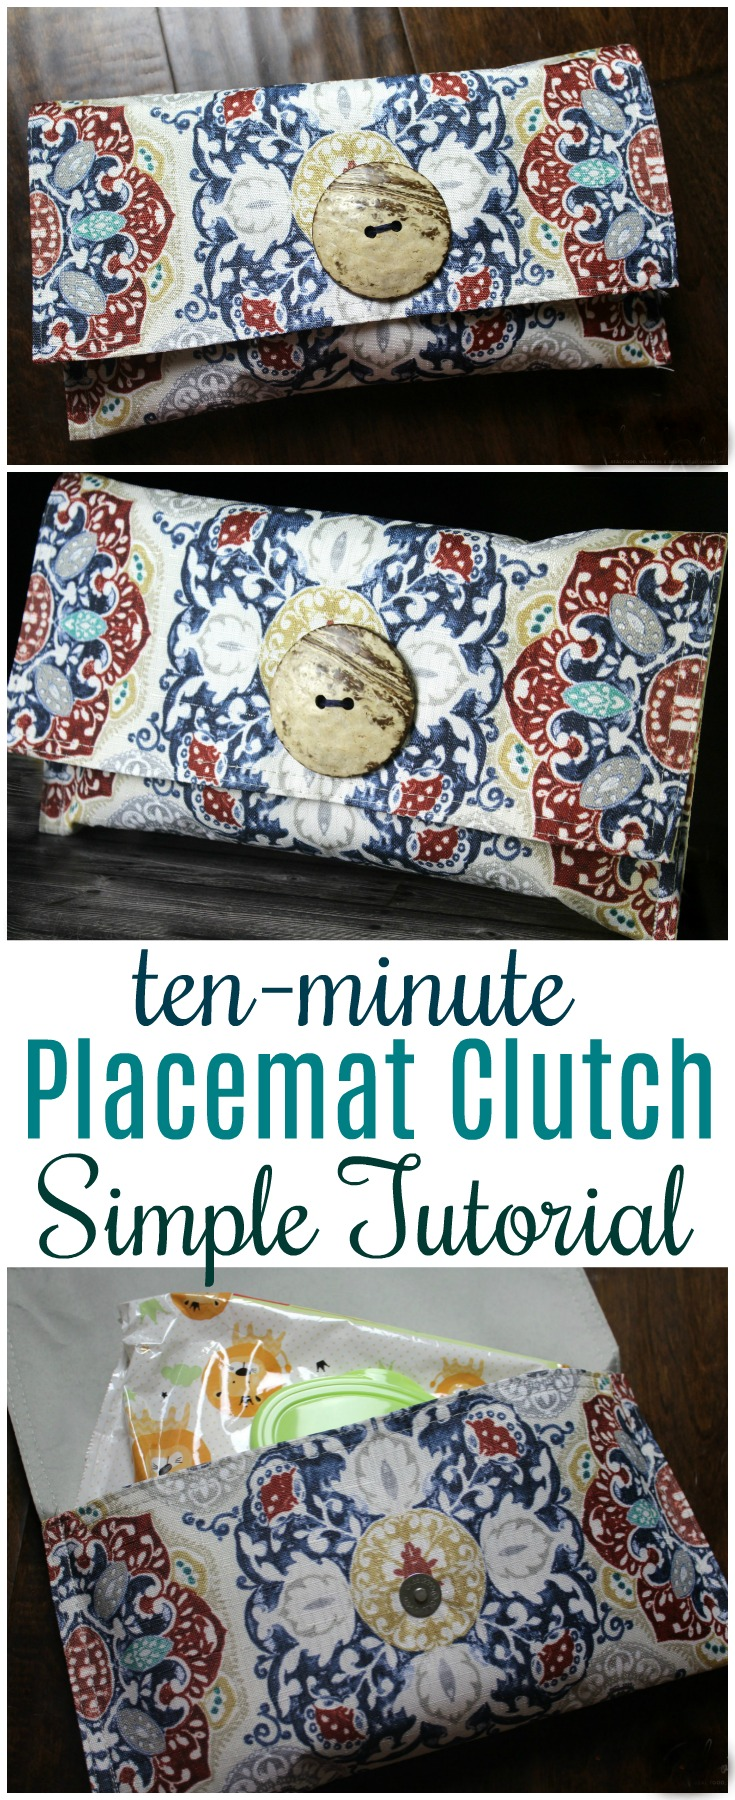 This placemat clutch purse comes together in under ten minutes for just a few dollars. It makes a stylish purse or case for baby wipes and a few diapers!